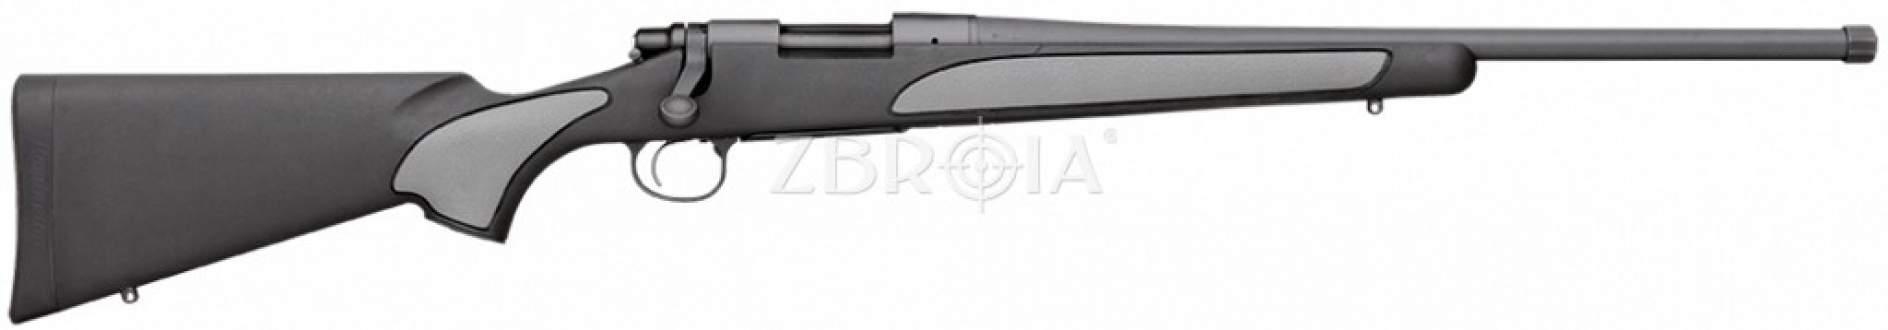 Карабин Remington 700 SPS THMZ кал. 223 Rem